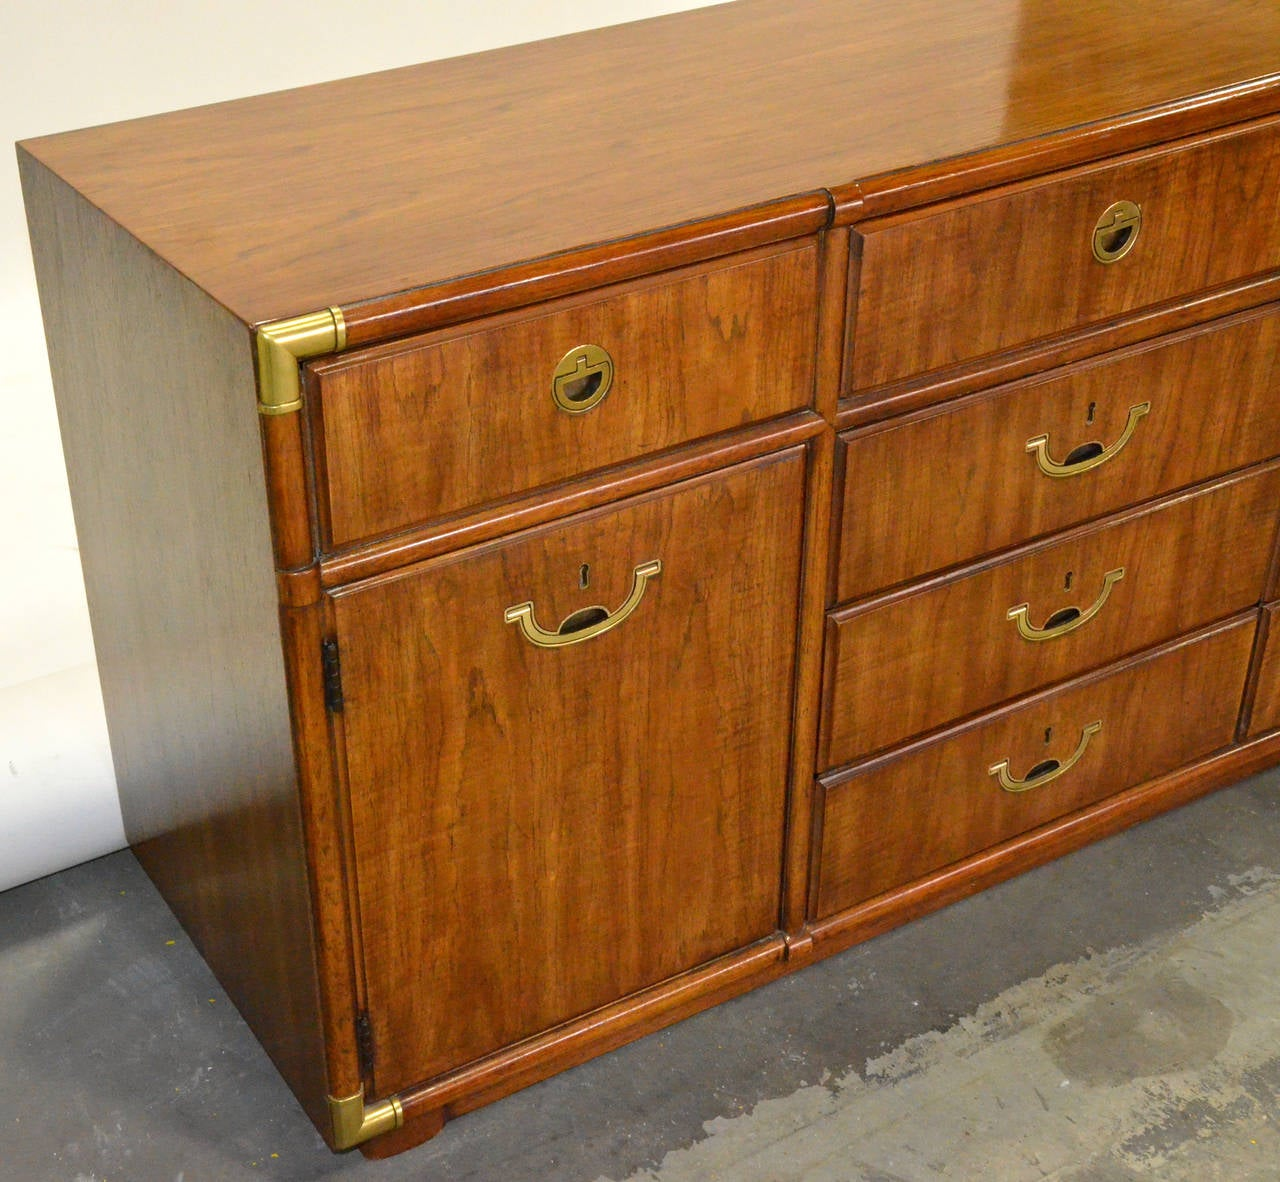 Drexel Heritage Campaign Dresser or Credenza For Sale at 1stdibs